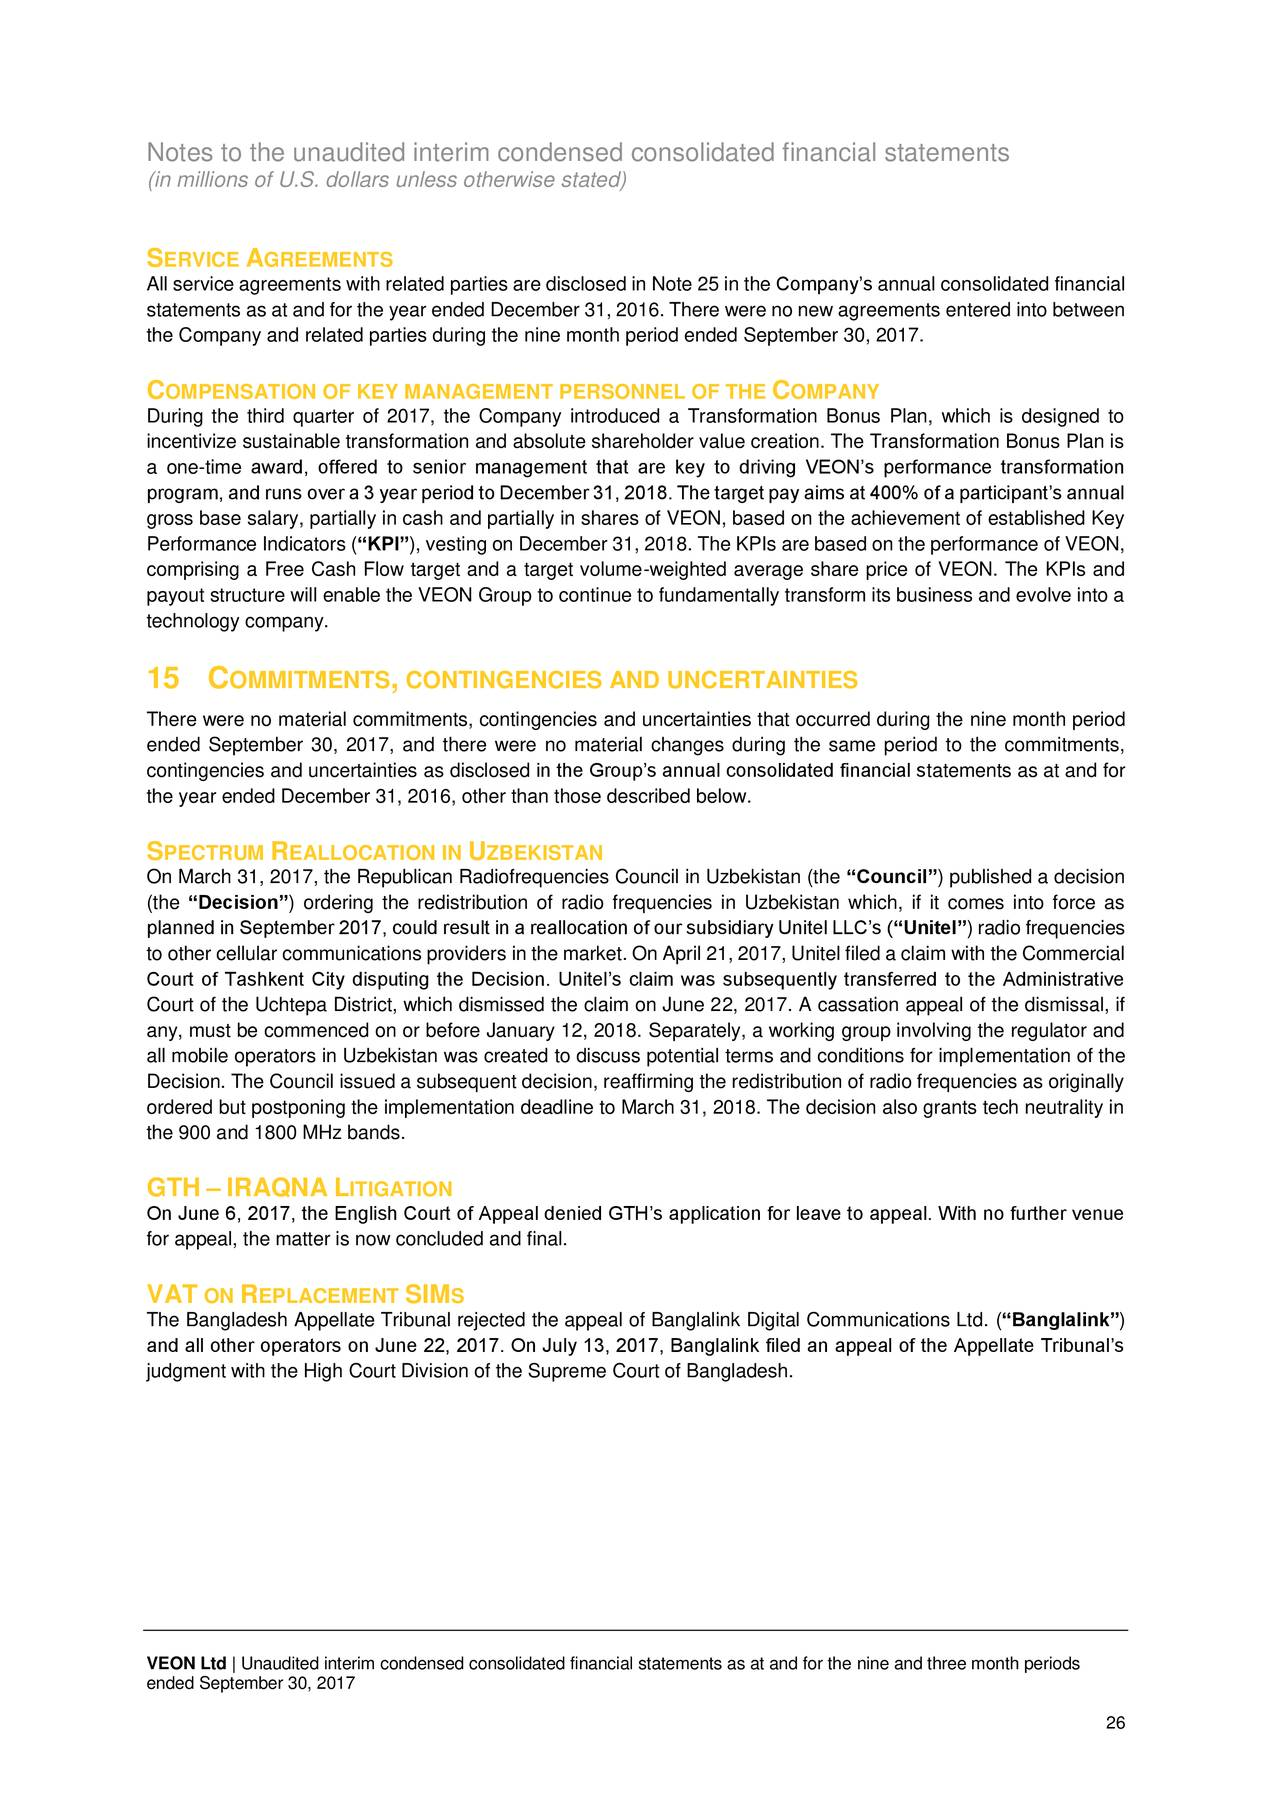 an analysis of the time value of money and retirement plan financial service providers A very brief introduction to the time value of money david robinson june 2011 away as a lump sum in your retirement account your plan is to retire early, at age 60 periods of time, financial historians have observed a consistent result.